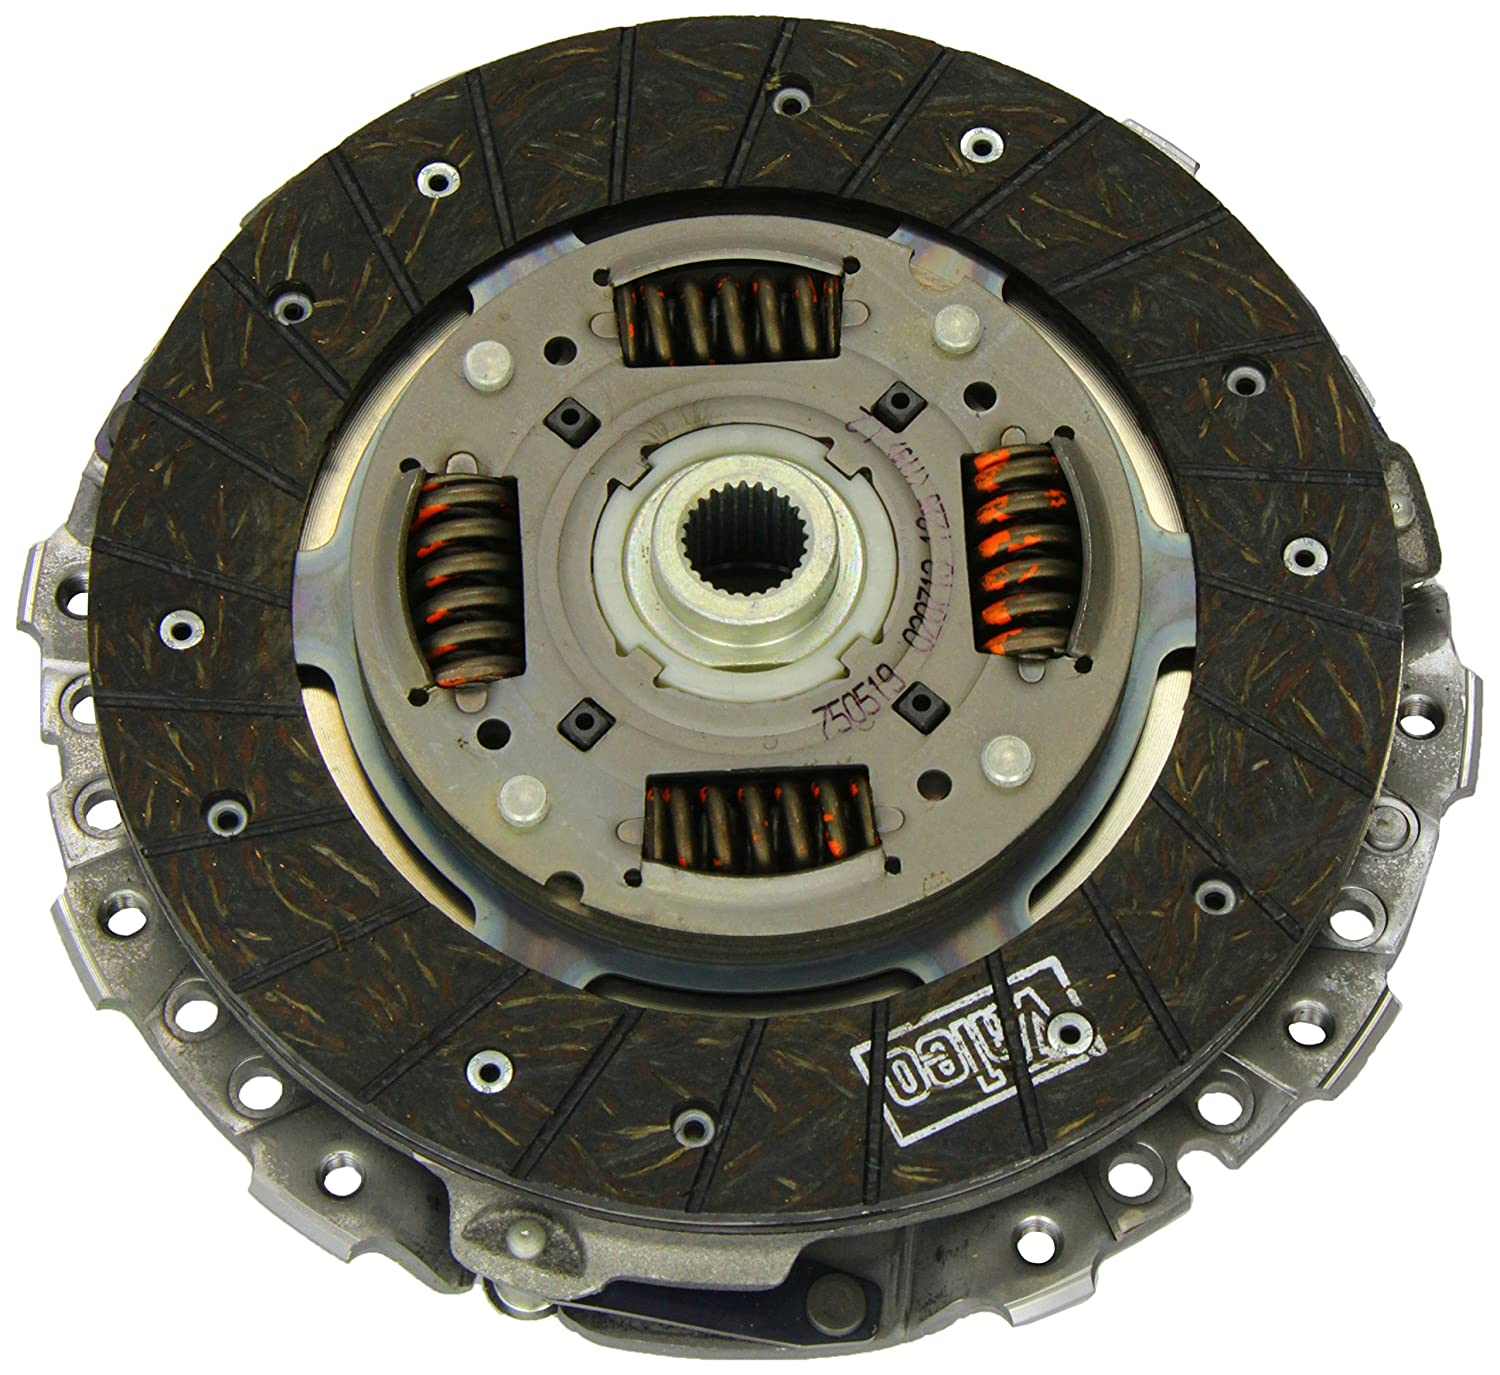 Amazon.com: 1992-1999 SEAT Cordoba Ibiza Toledo VW Vento Golf Mk3 1.9L Clutch kit VALEO: Automotive